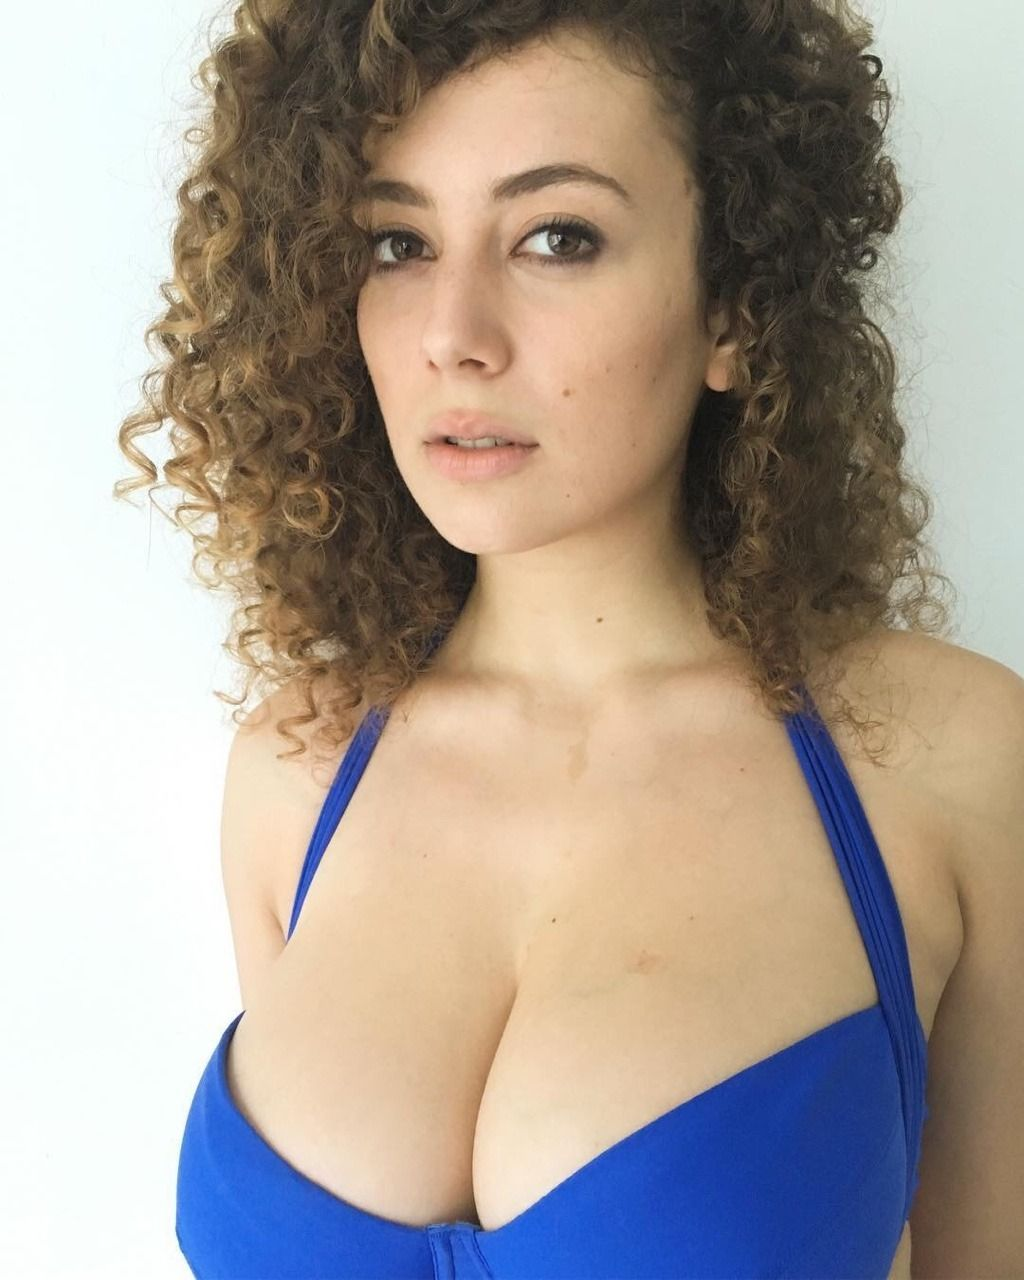 Hot Leila Lowfire nudes (35 foto and video), Pussy, Sideboobs, Selfie, swimsuit 2015